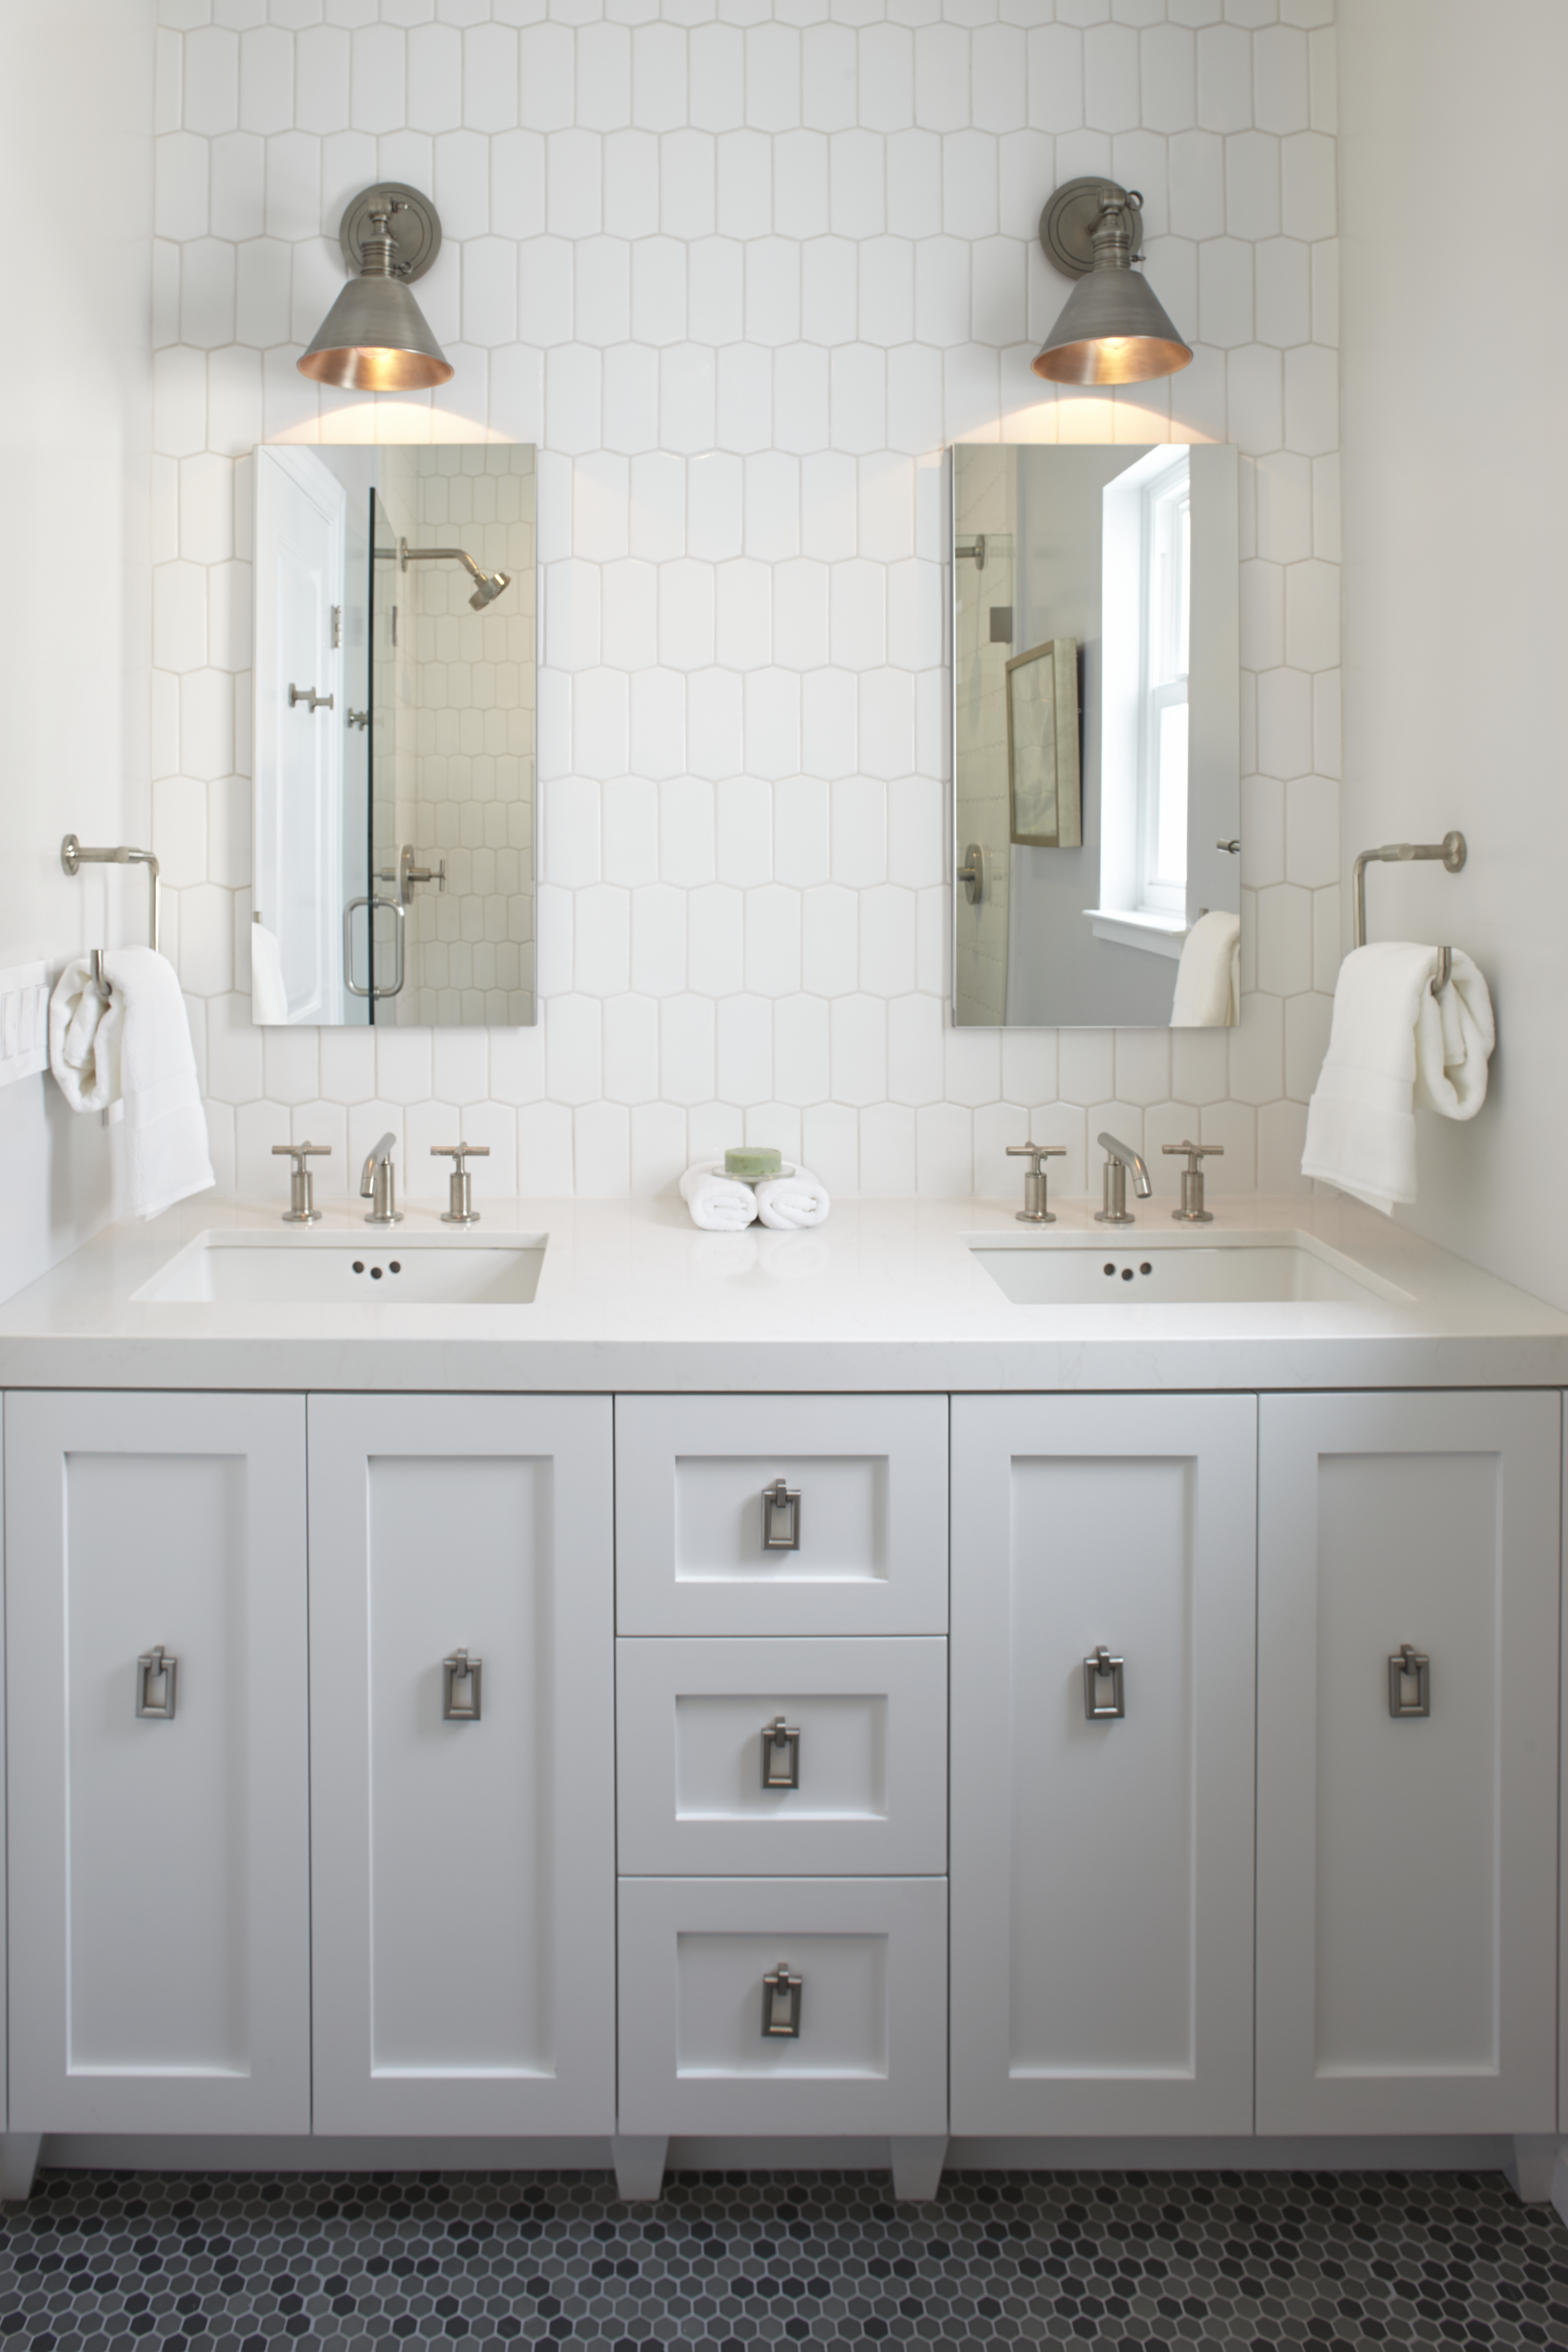 Double Vanity With Additional Storage Between The Sinks, As Well As 2  Roburn Mirrored Medicine Cabinets For Additional Storage